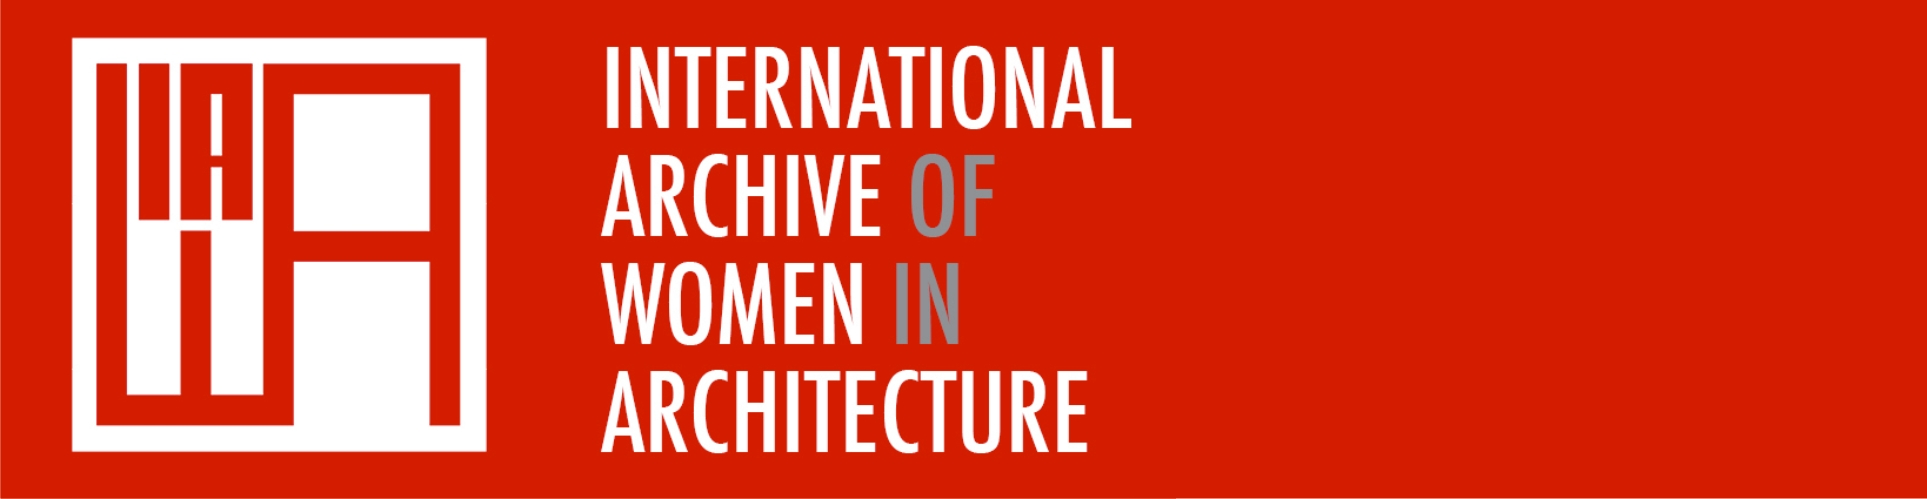 International Archive of Women in Architecture